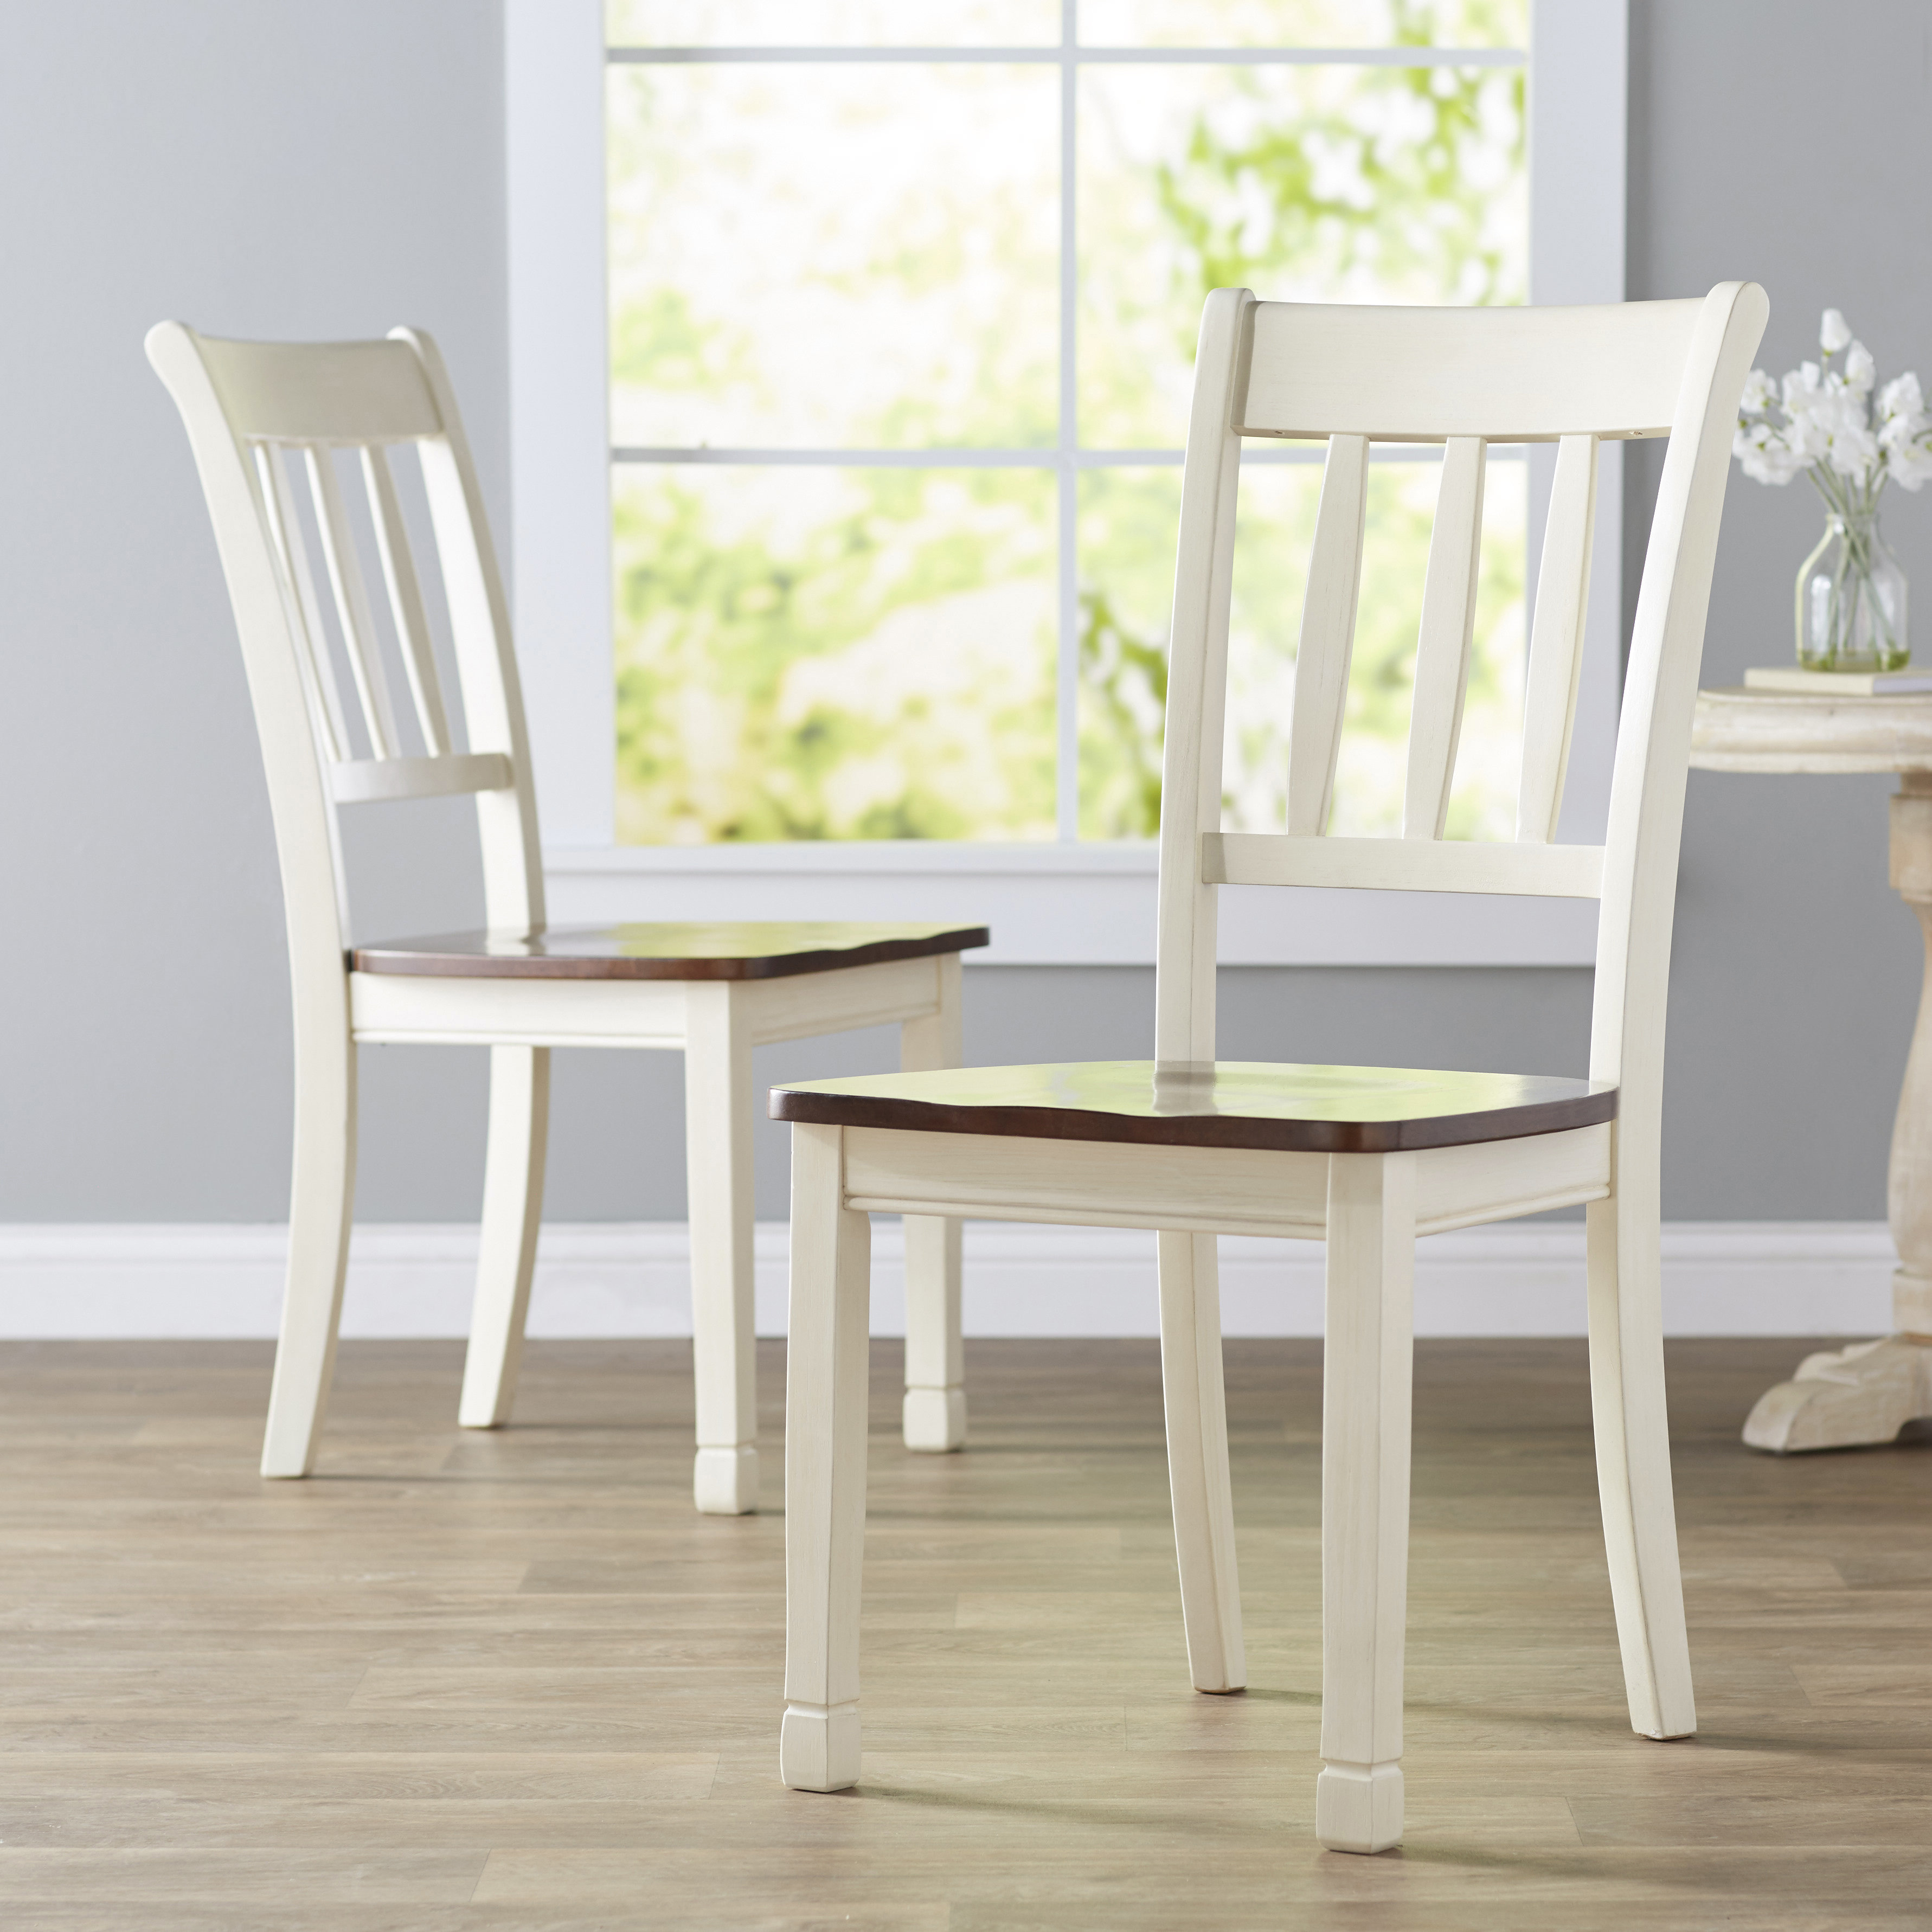 Northwoods 3 Piece Dining Sets Within Favorite Rosecliff Heights (#12 of 20)